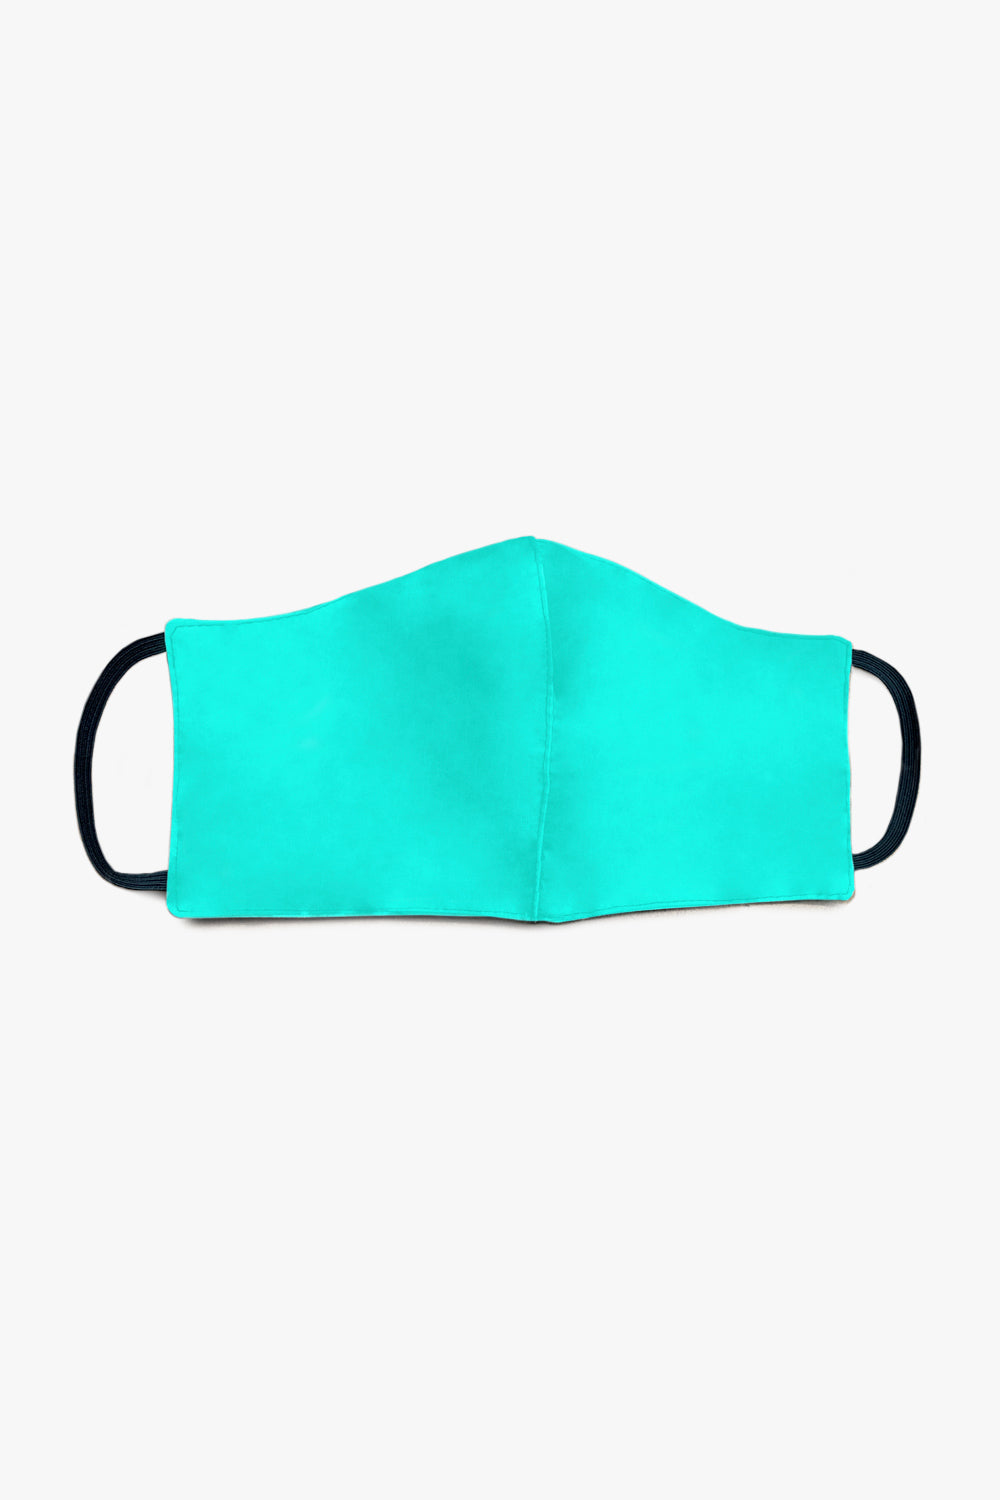 kids face mask / turquoise